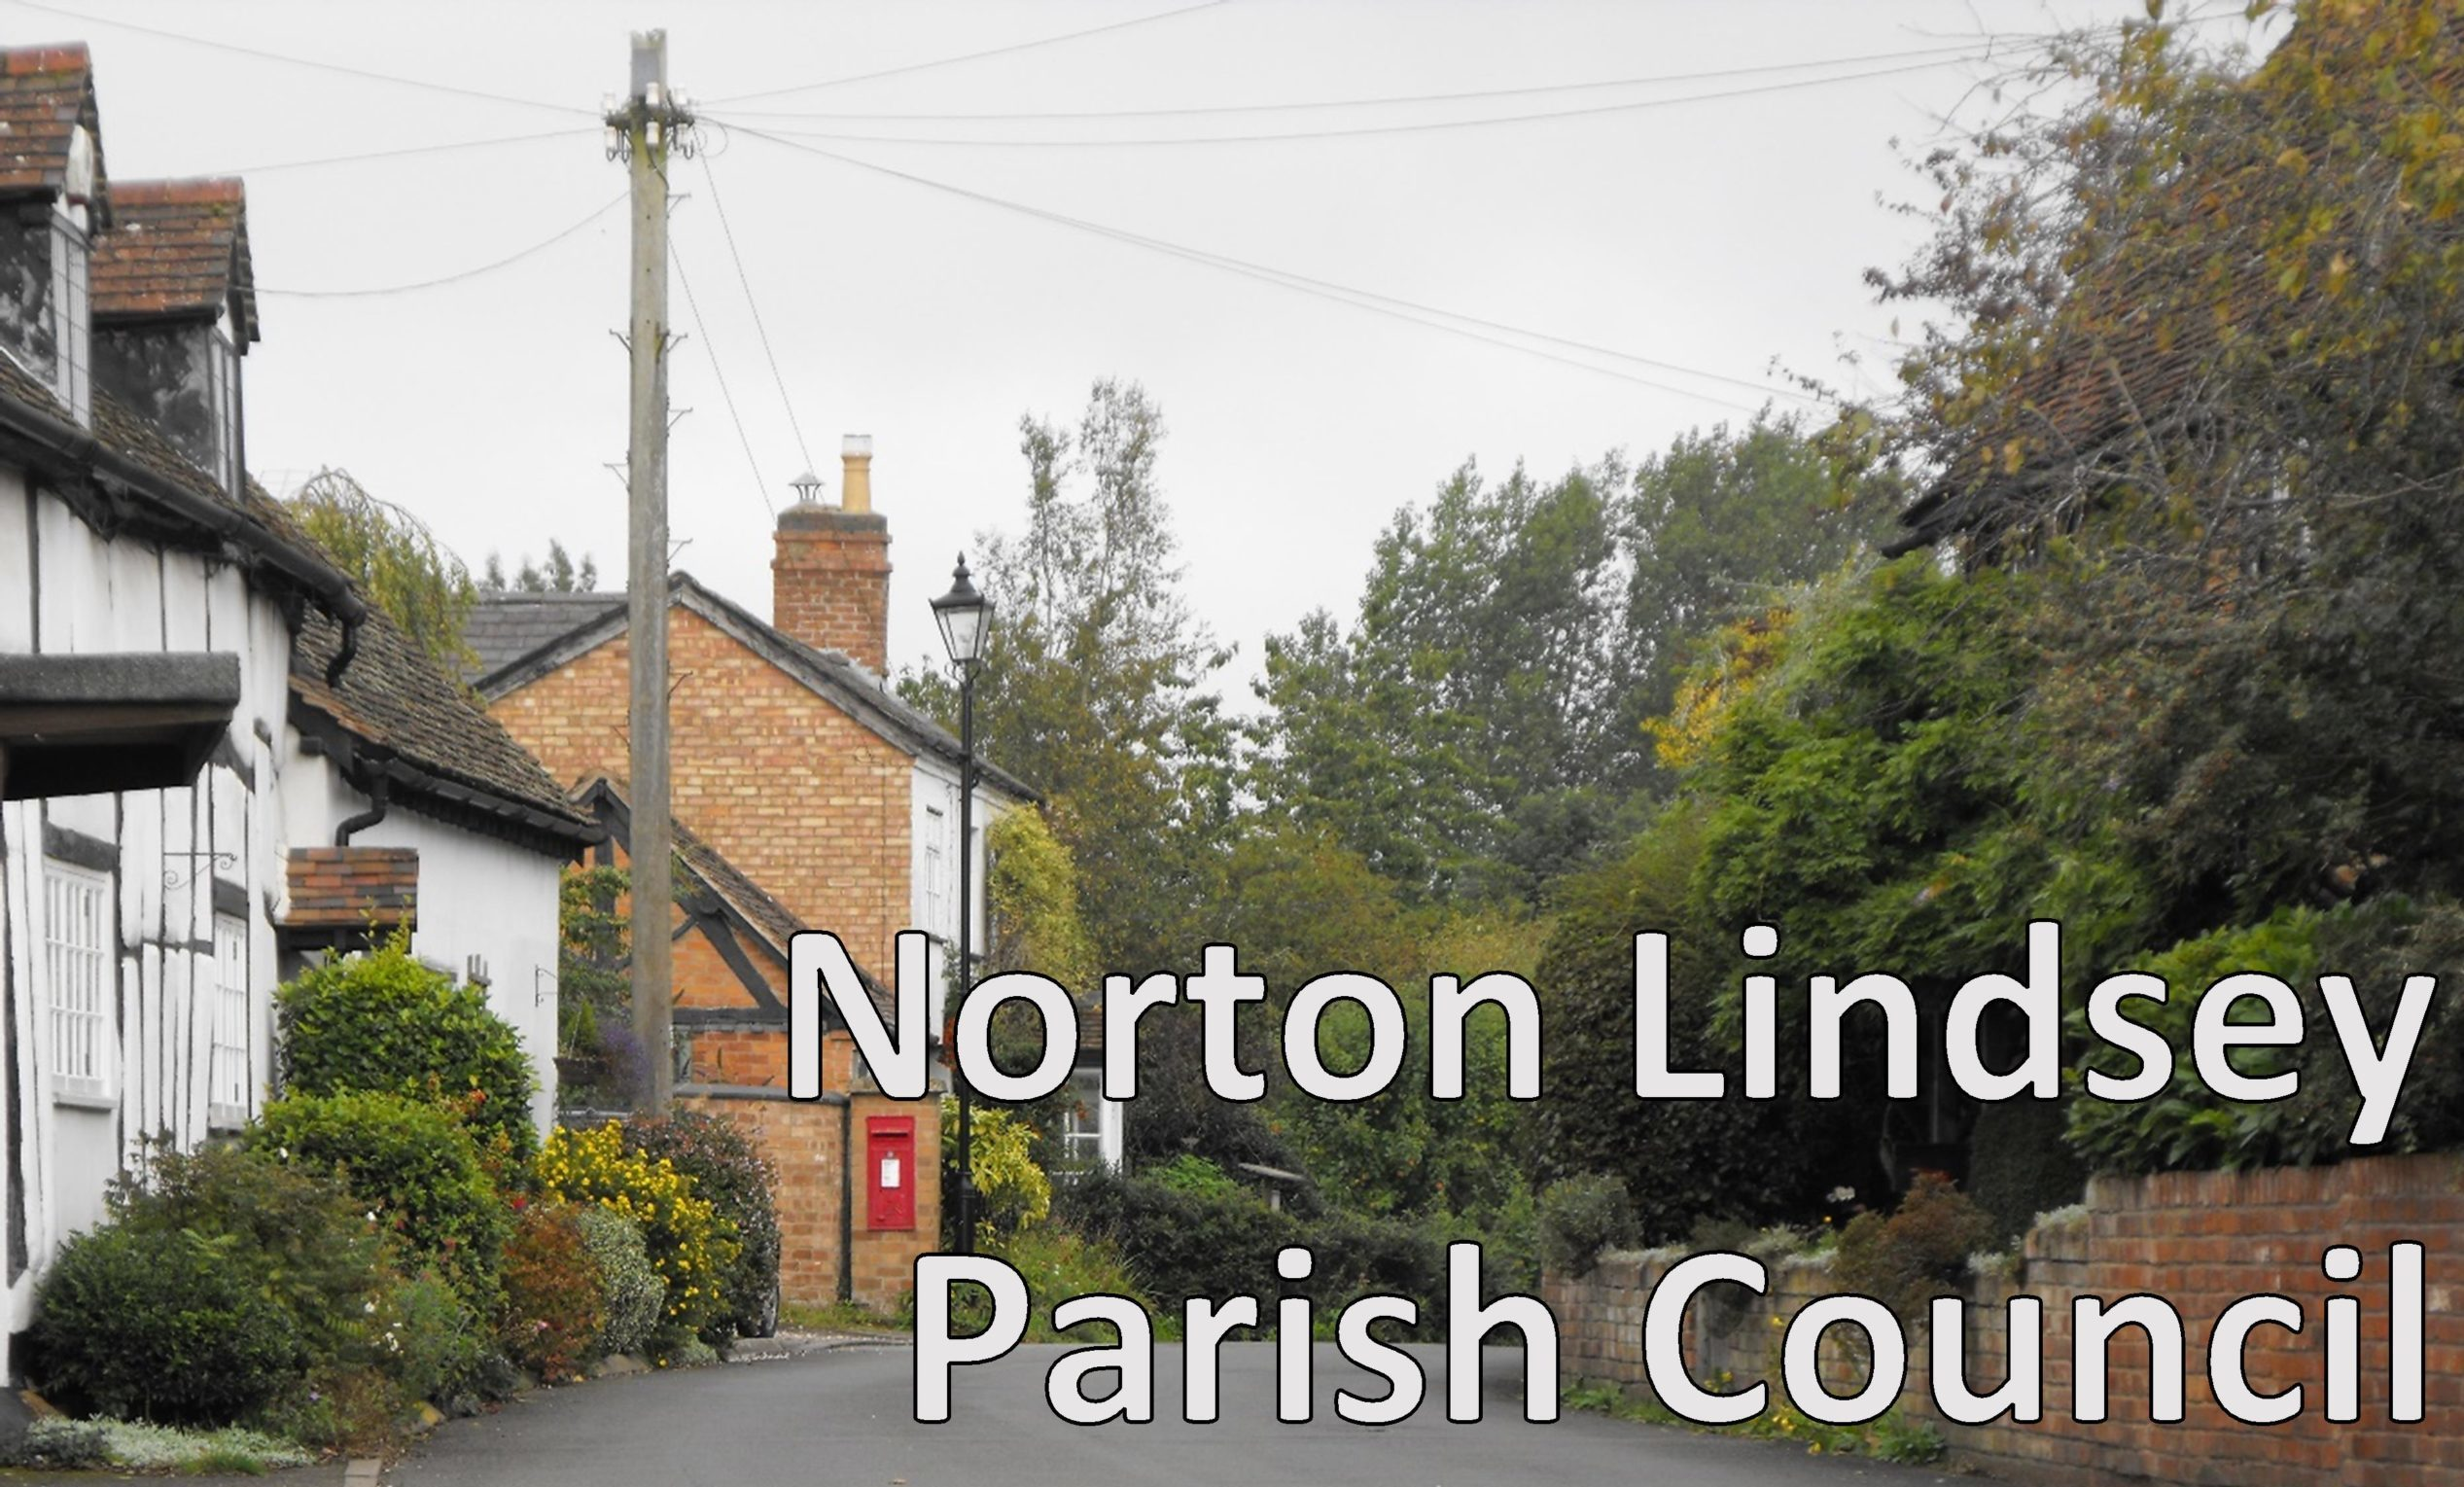 Norton Lindsey Parish Council